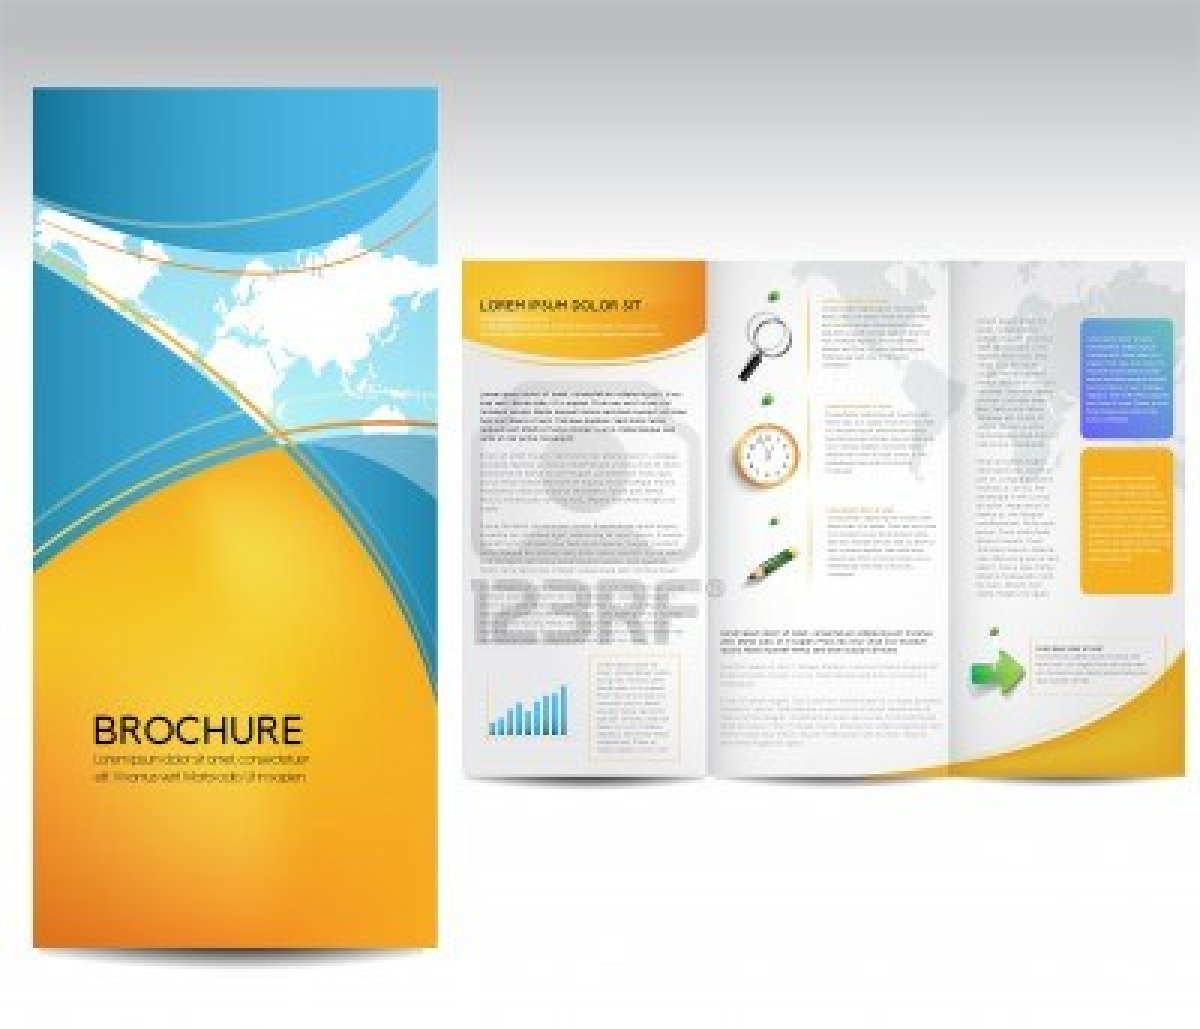 christian brochure templates download christian brochure templates